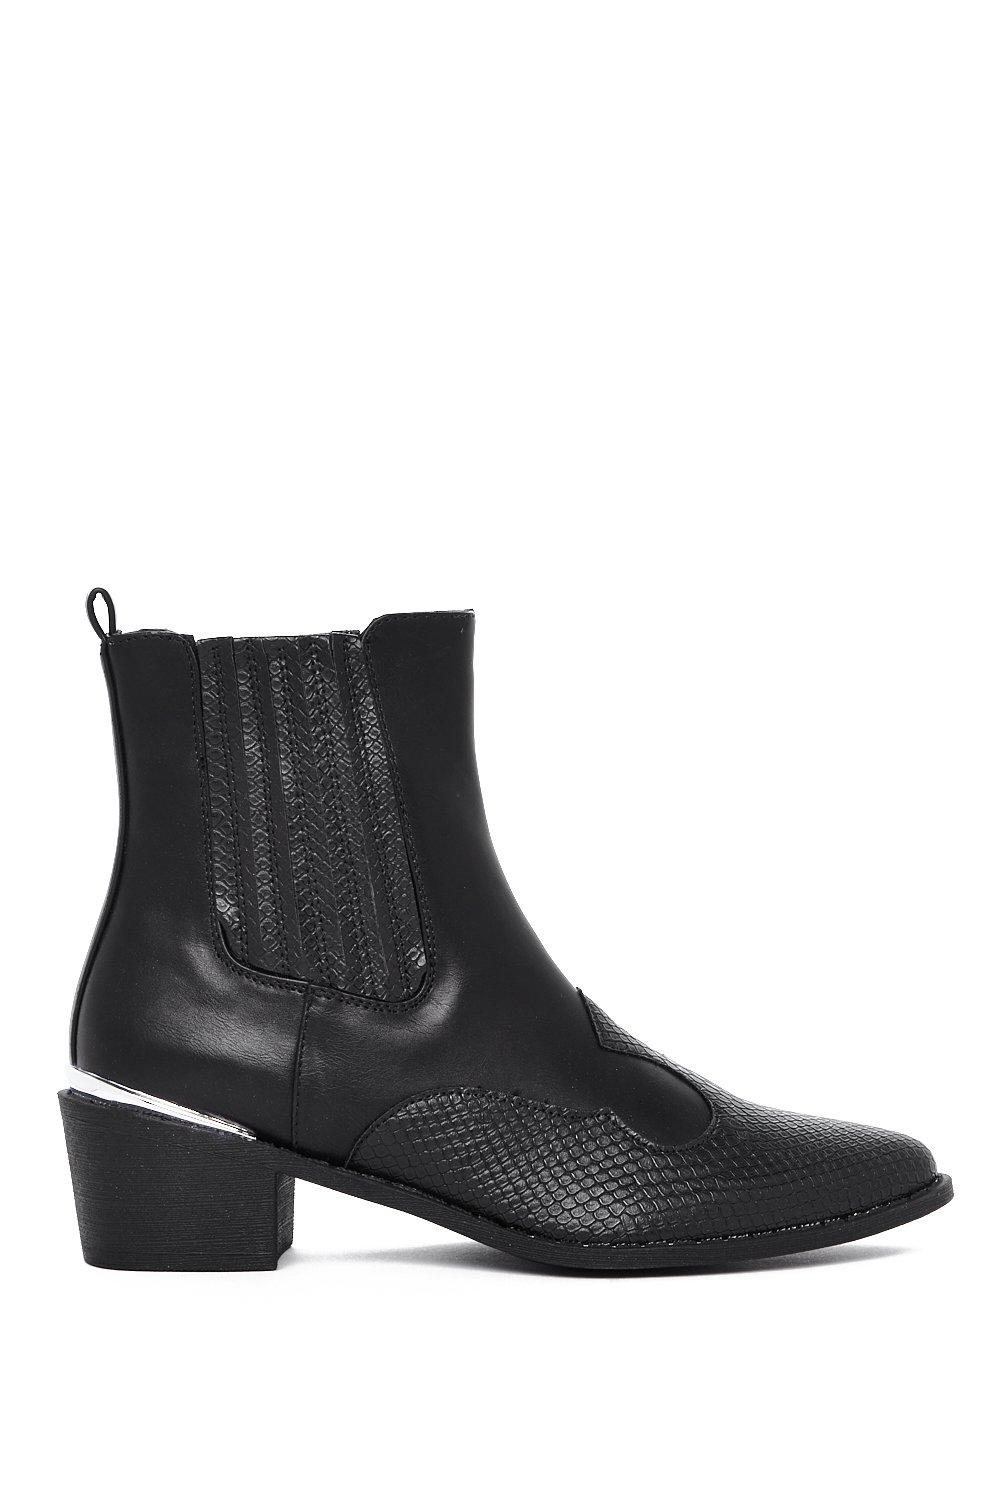 outlet hot sale I Love Croc 'N Roll Faux Leather Boot cheap sale extremely cheap affordable fashionable sale online eastbay online 0lXB3wNJ